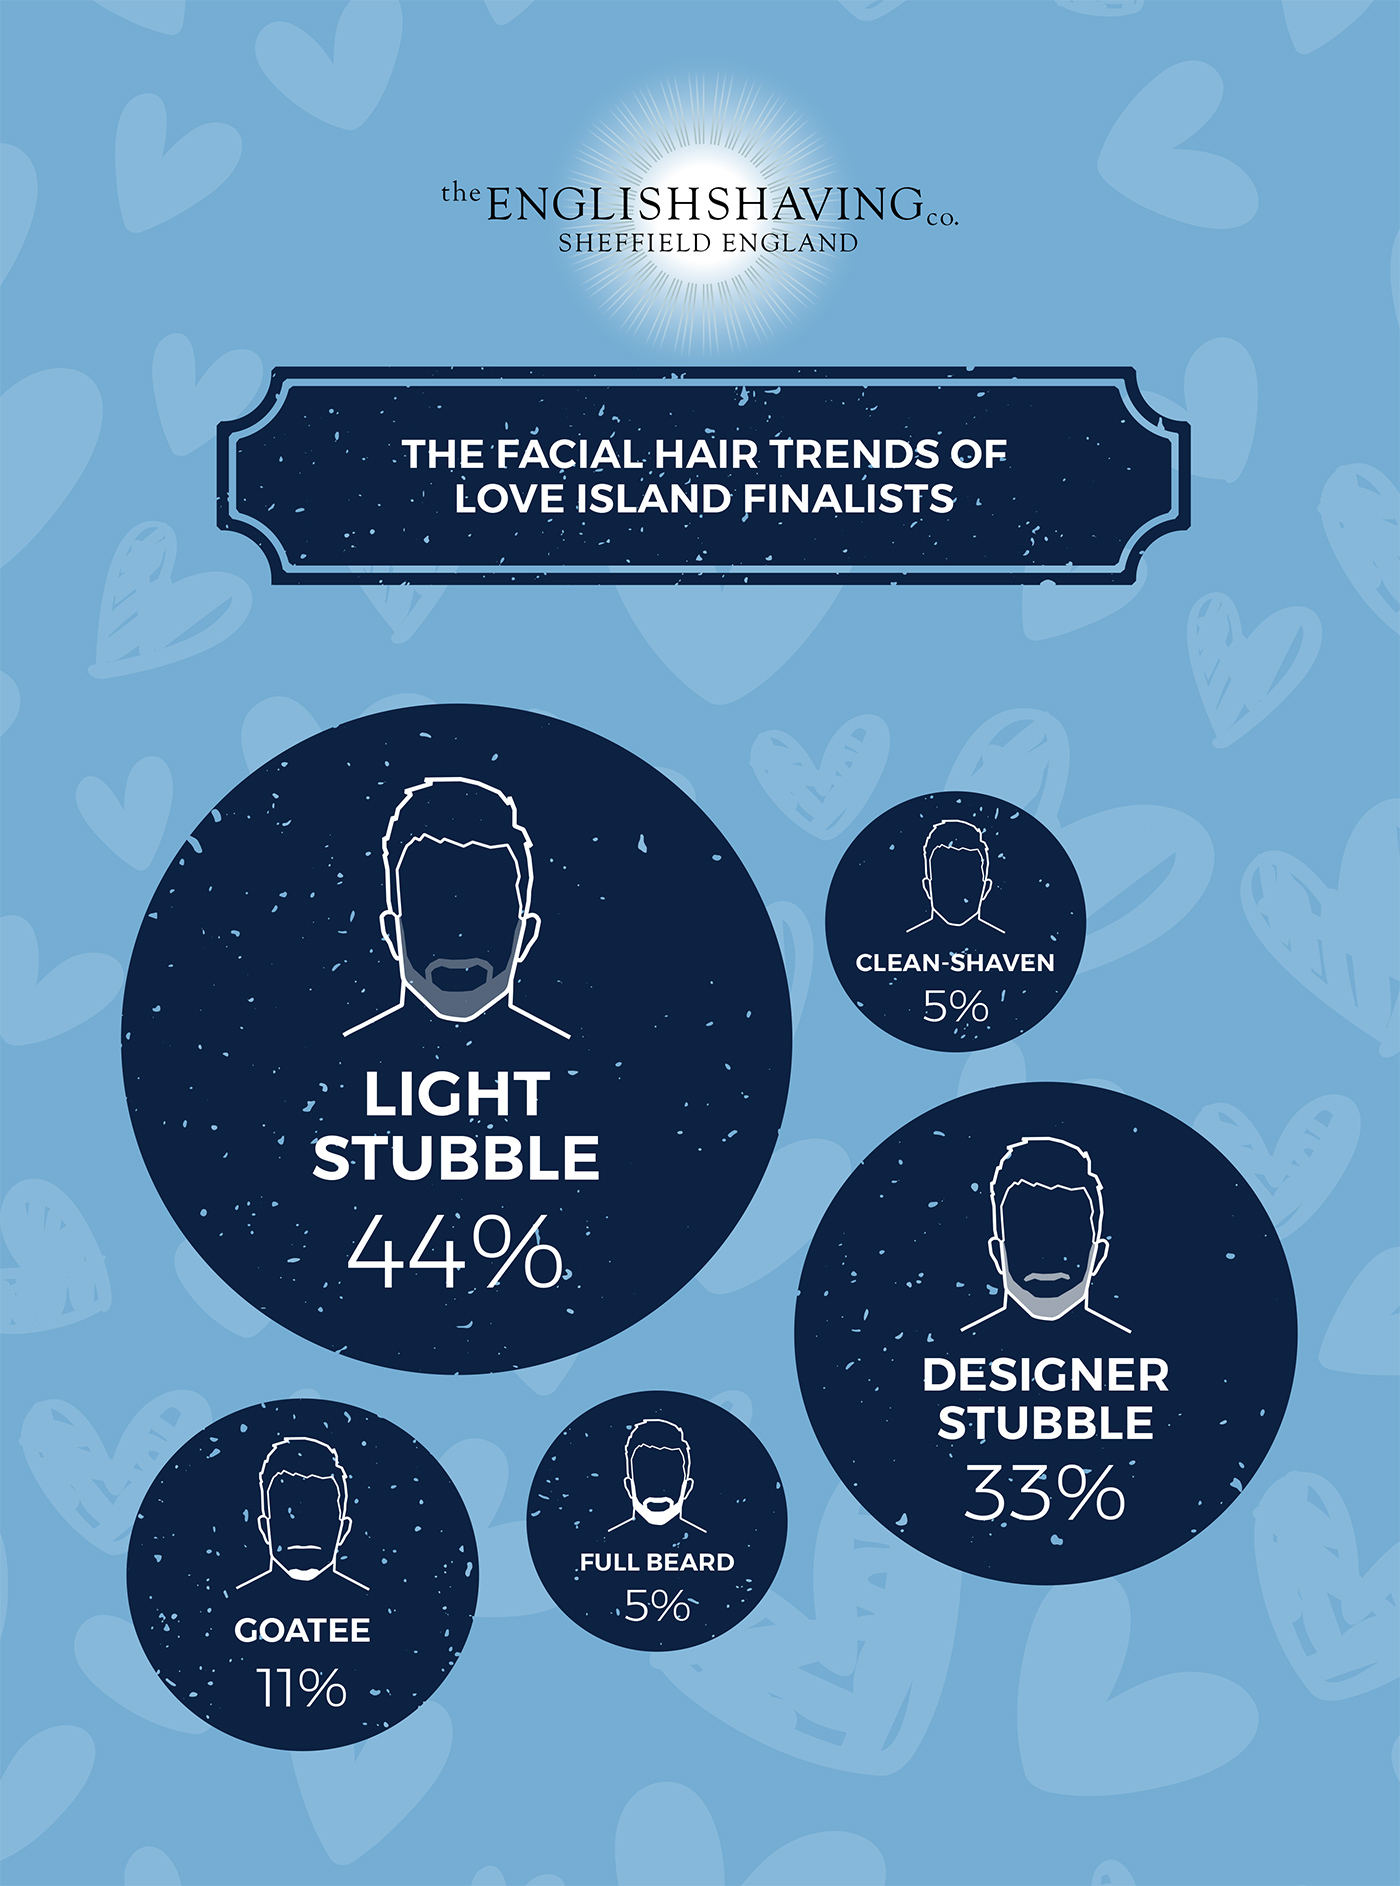 The Facial Hair Trends of Previous Love Island Finalists